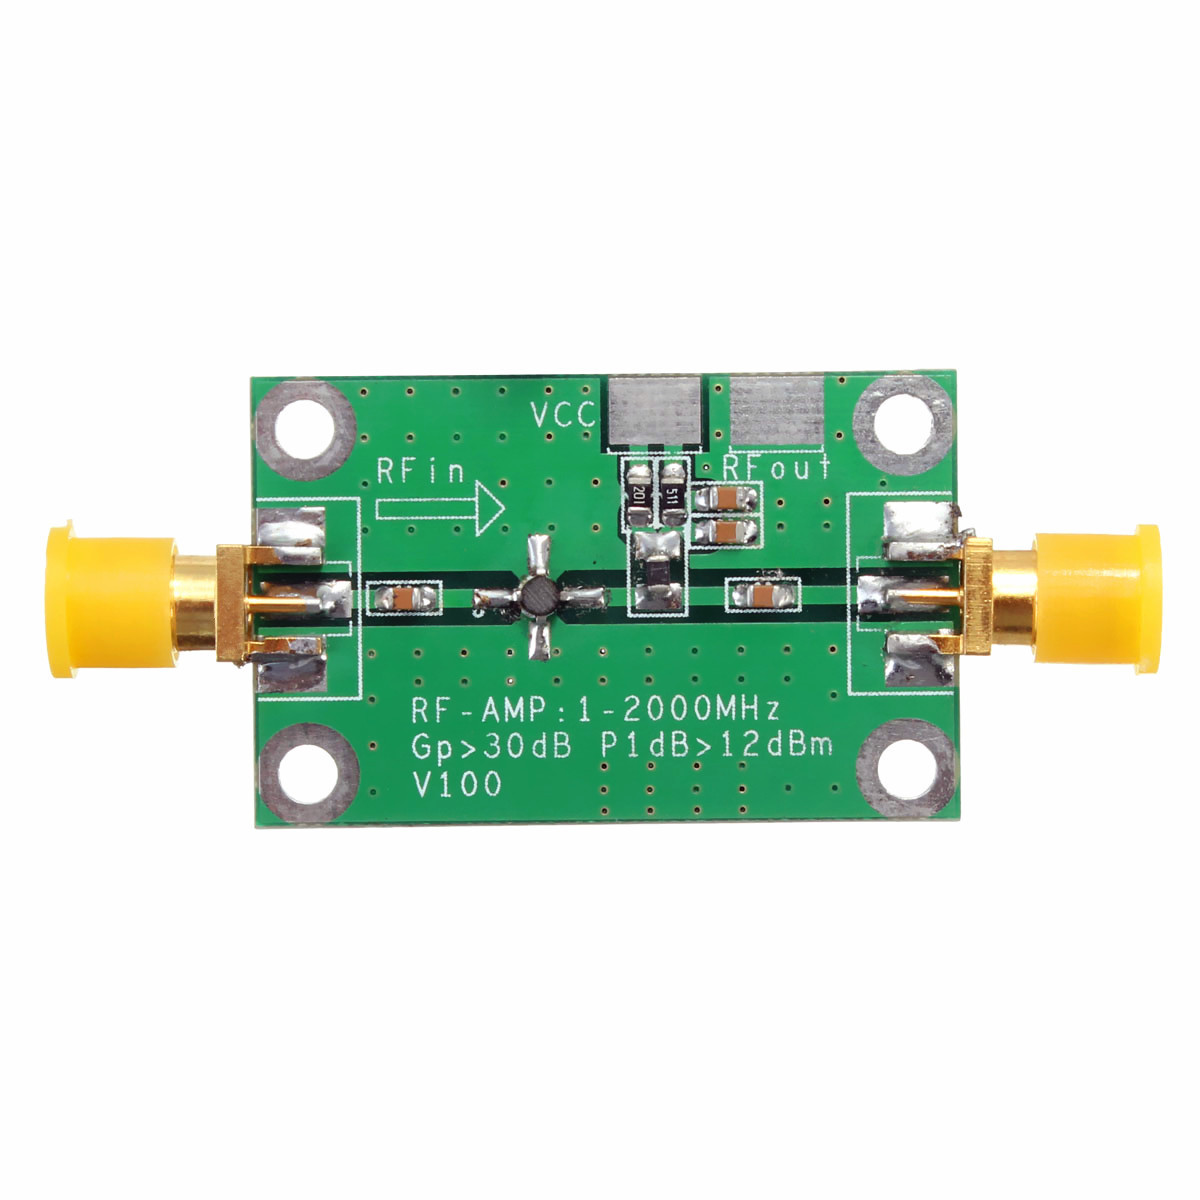 In Design; Leory Ultra-high Frequency 1-2000mhz 2ghz 30db Rf Amplifier Board Broadband Gain Amplification Low Noise Module For Vhfvhf/uhf Novel